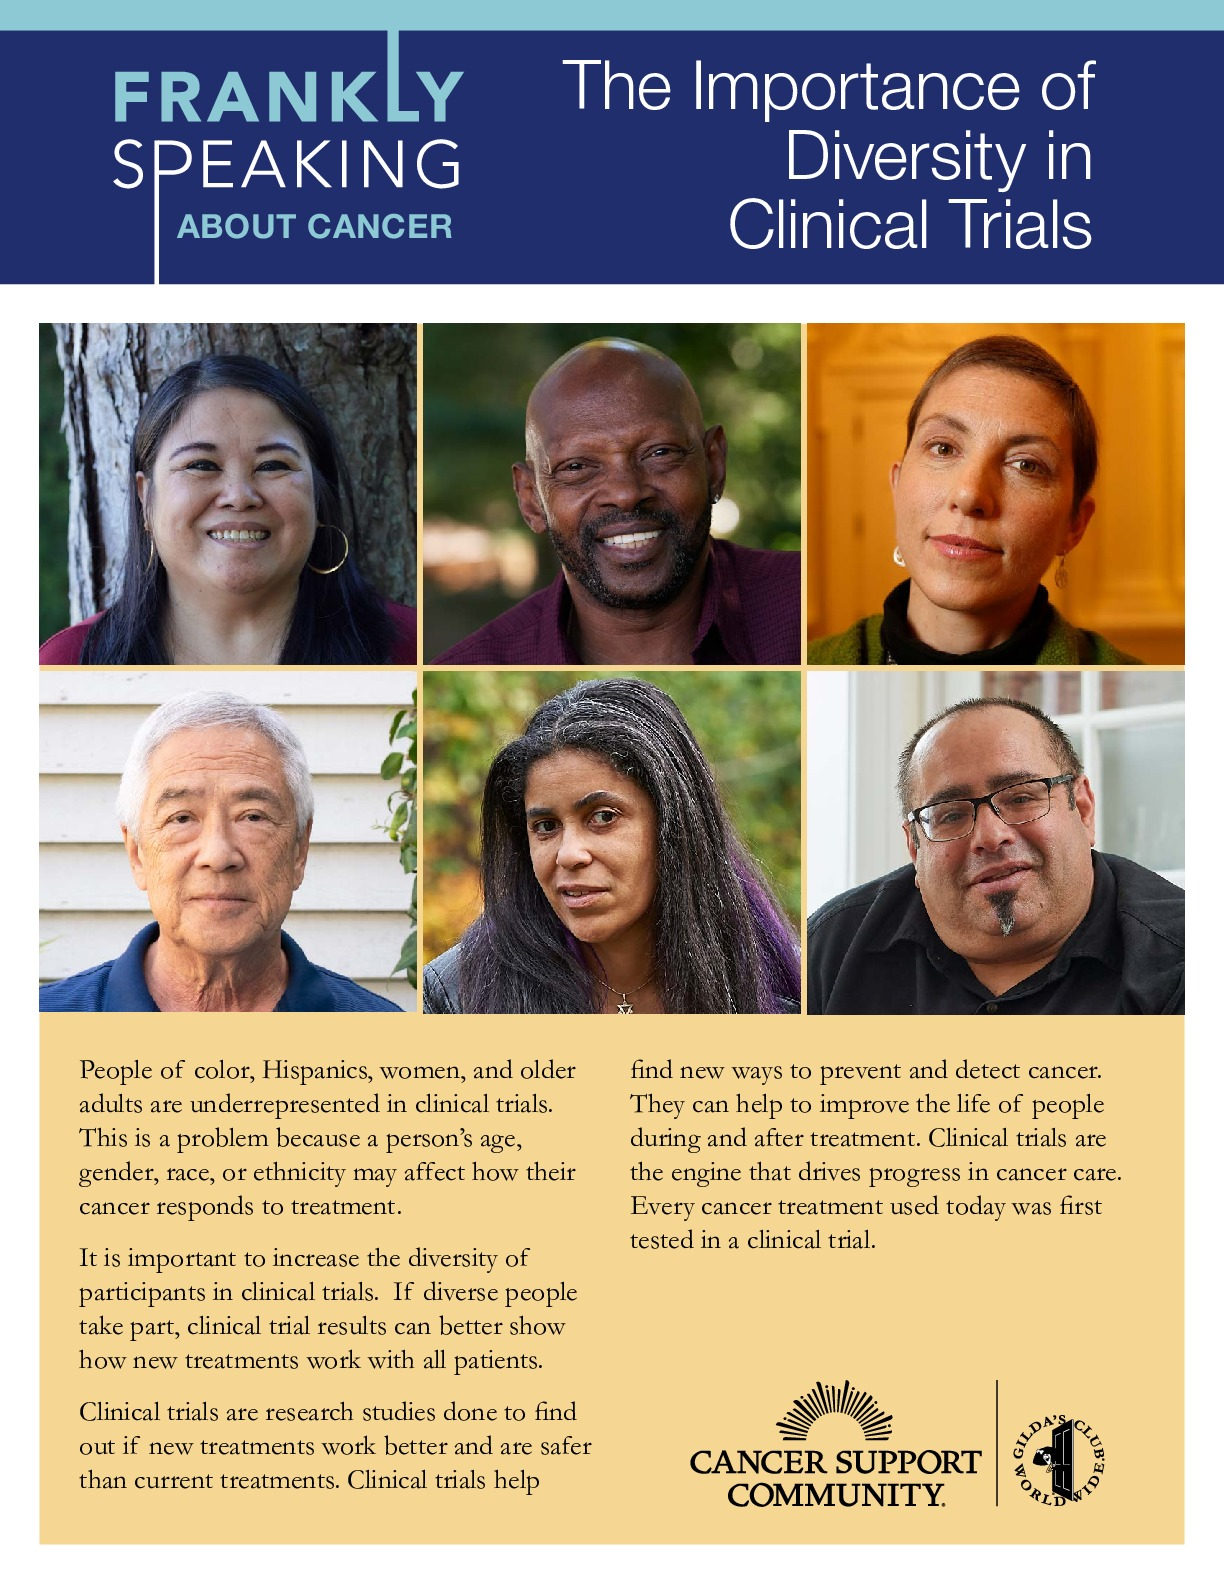 The Importance of Diversity in Clinical Trials